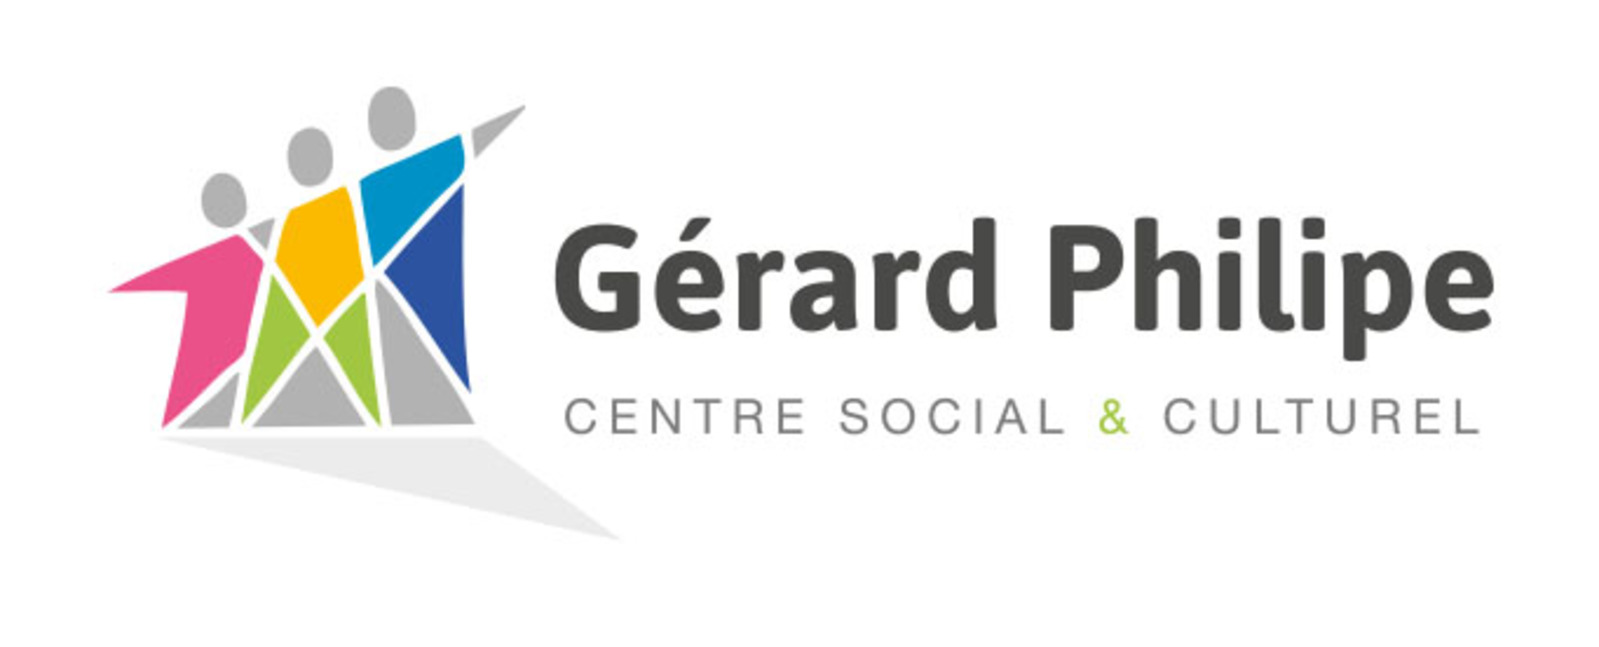 Gym Pilates - Centre Social & Culturel Gérard Philipe